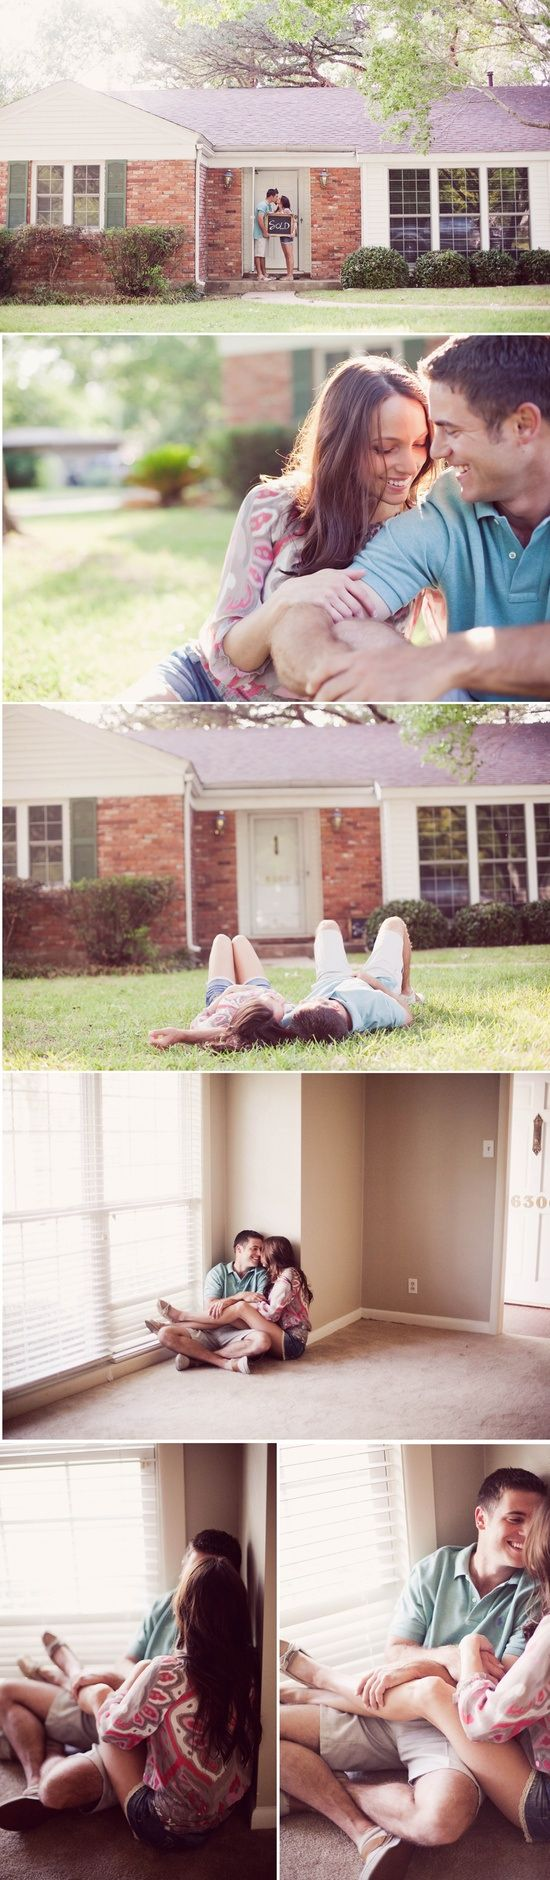 First home photoshoot idea.